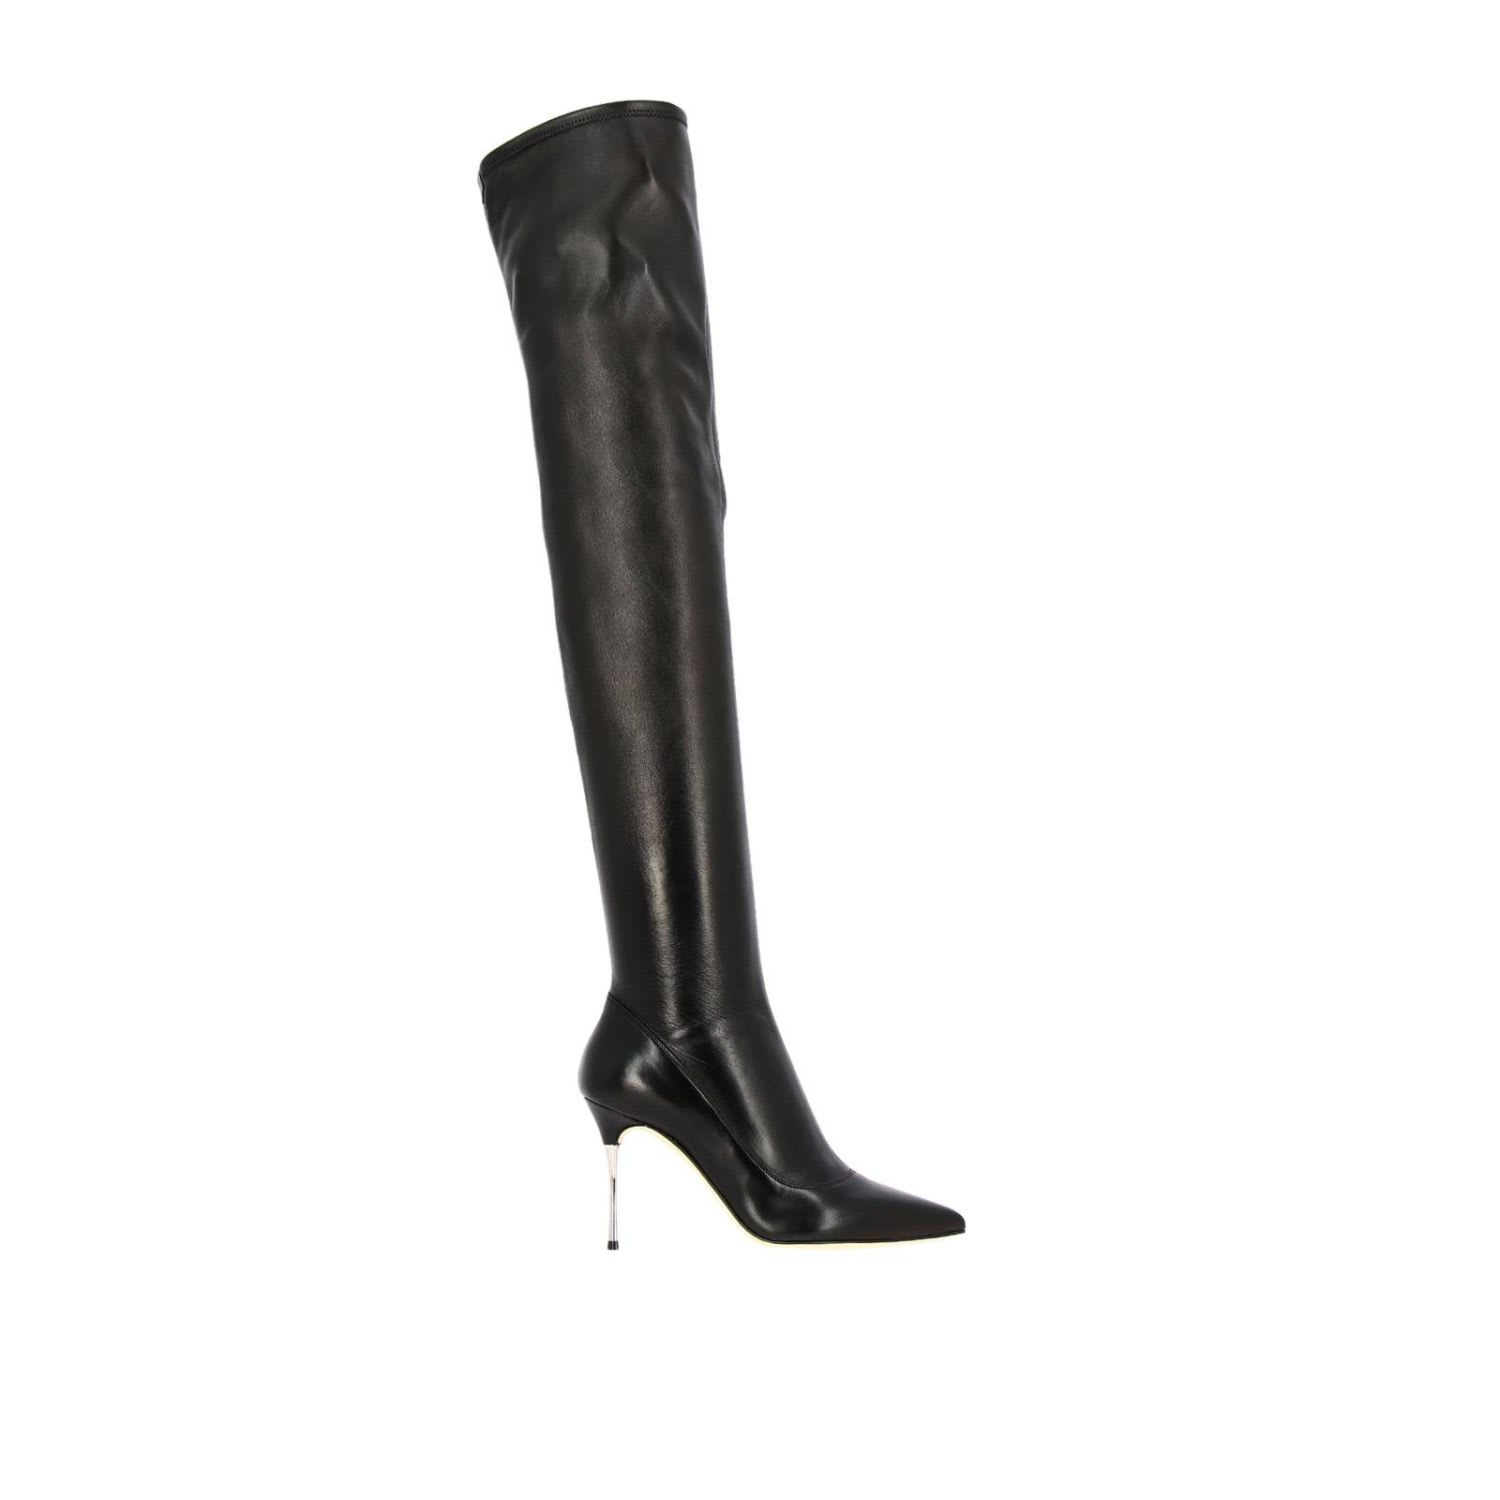 a6bccf7f8b2 Sergio Rossi Boots Shoes Women Sergio Rossi